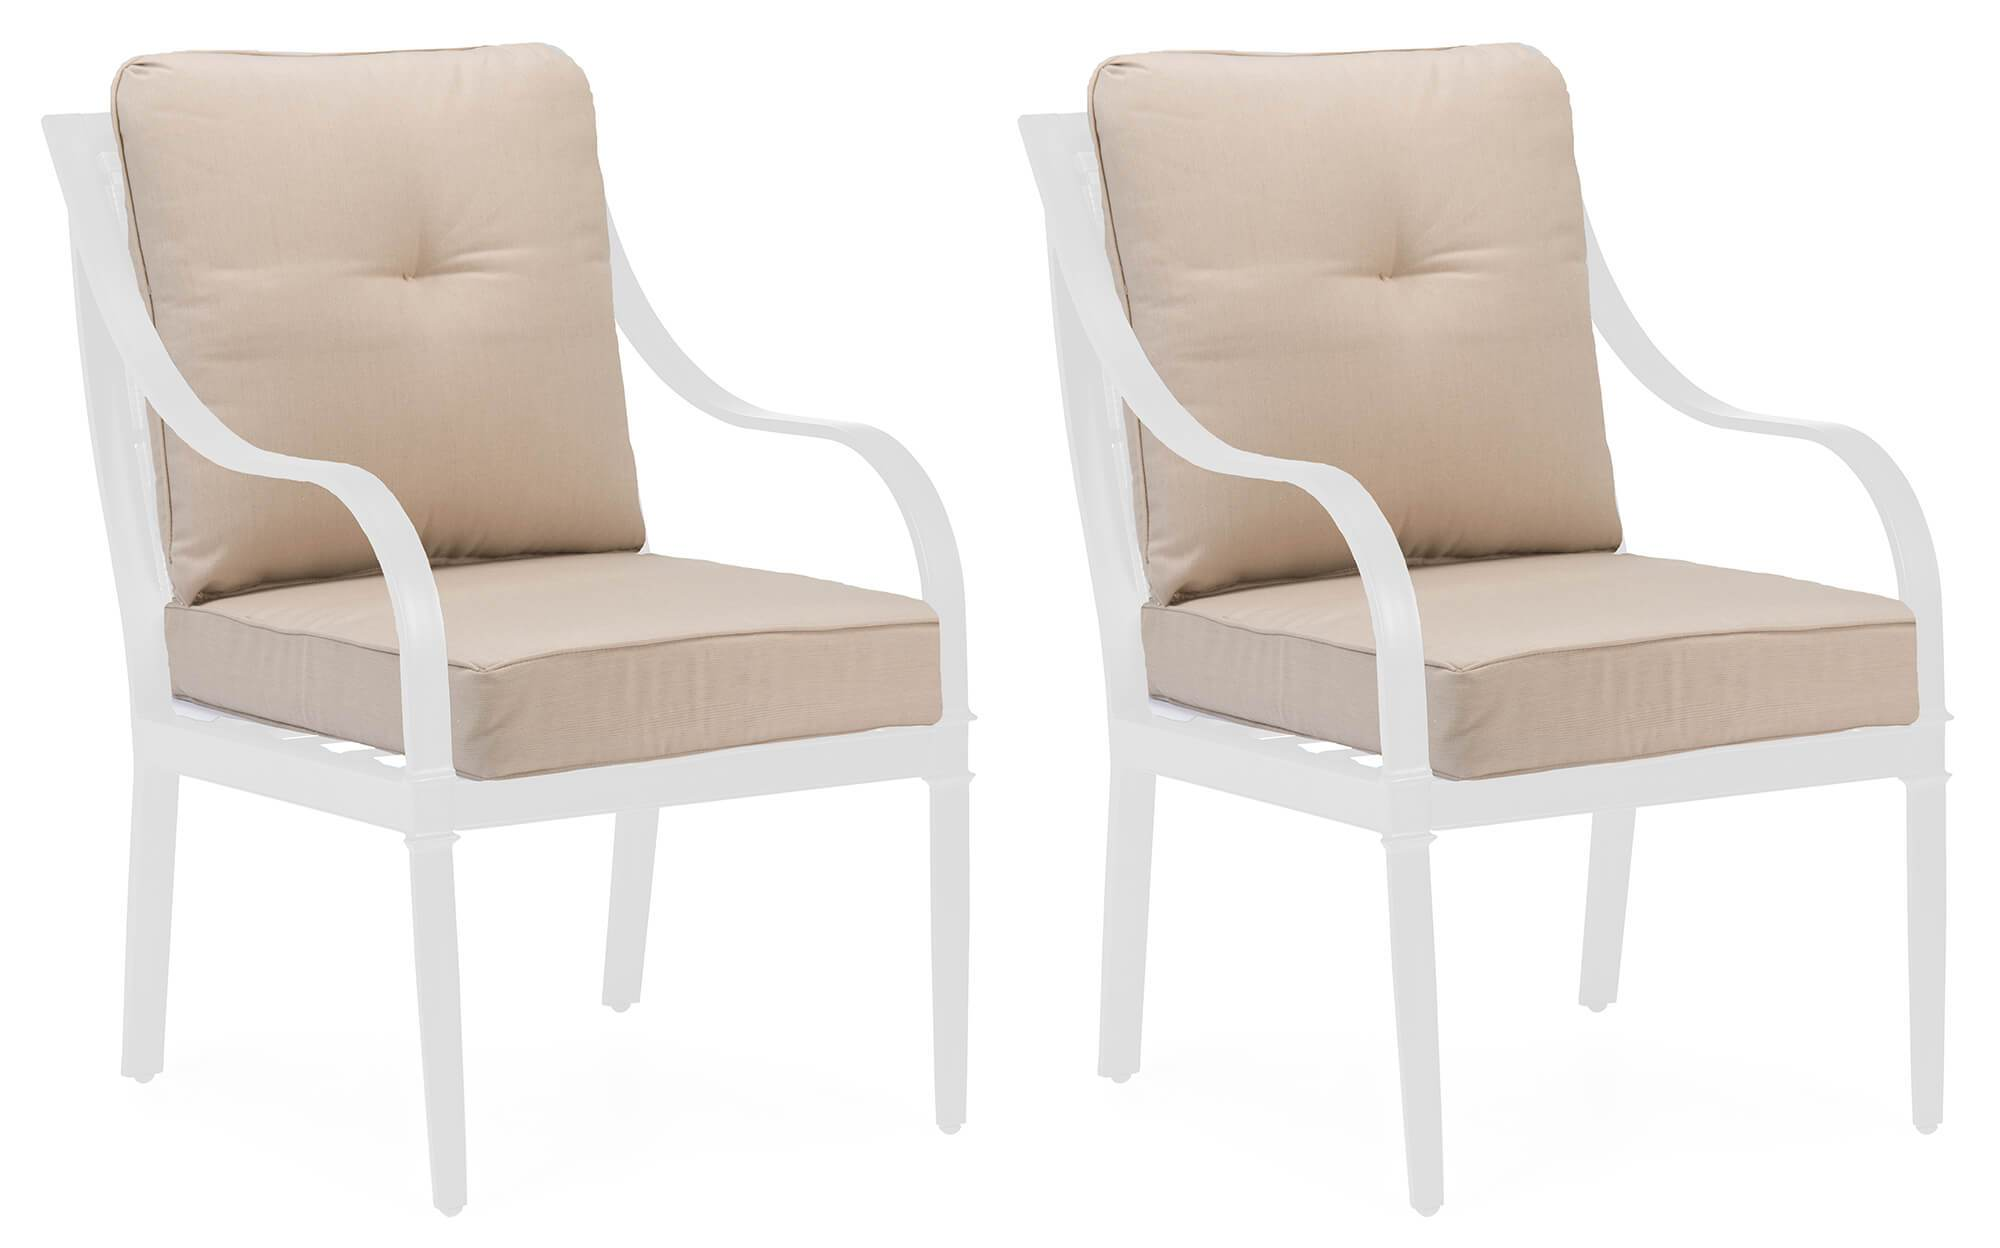 Charlotte Patio Dining Chair Replacement Cushions Set Of 2